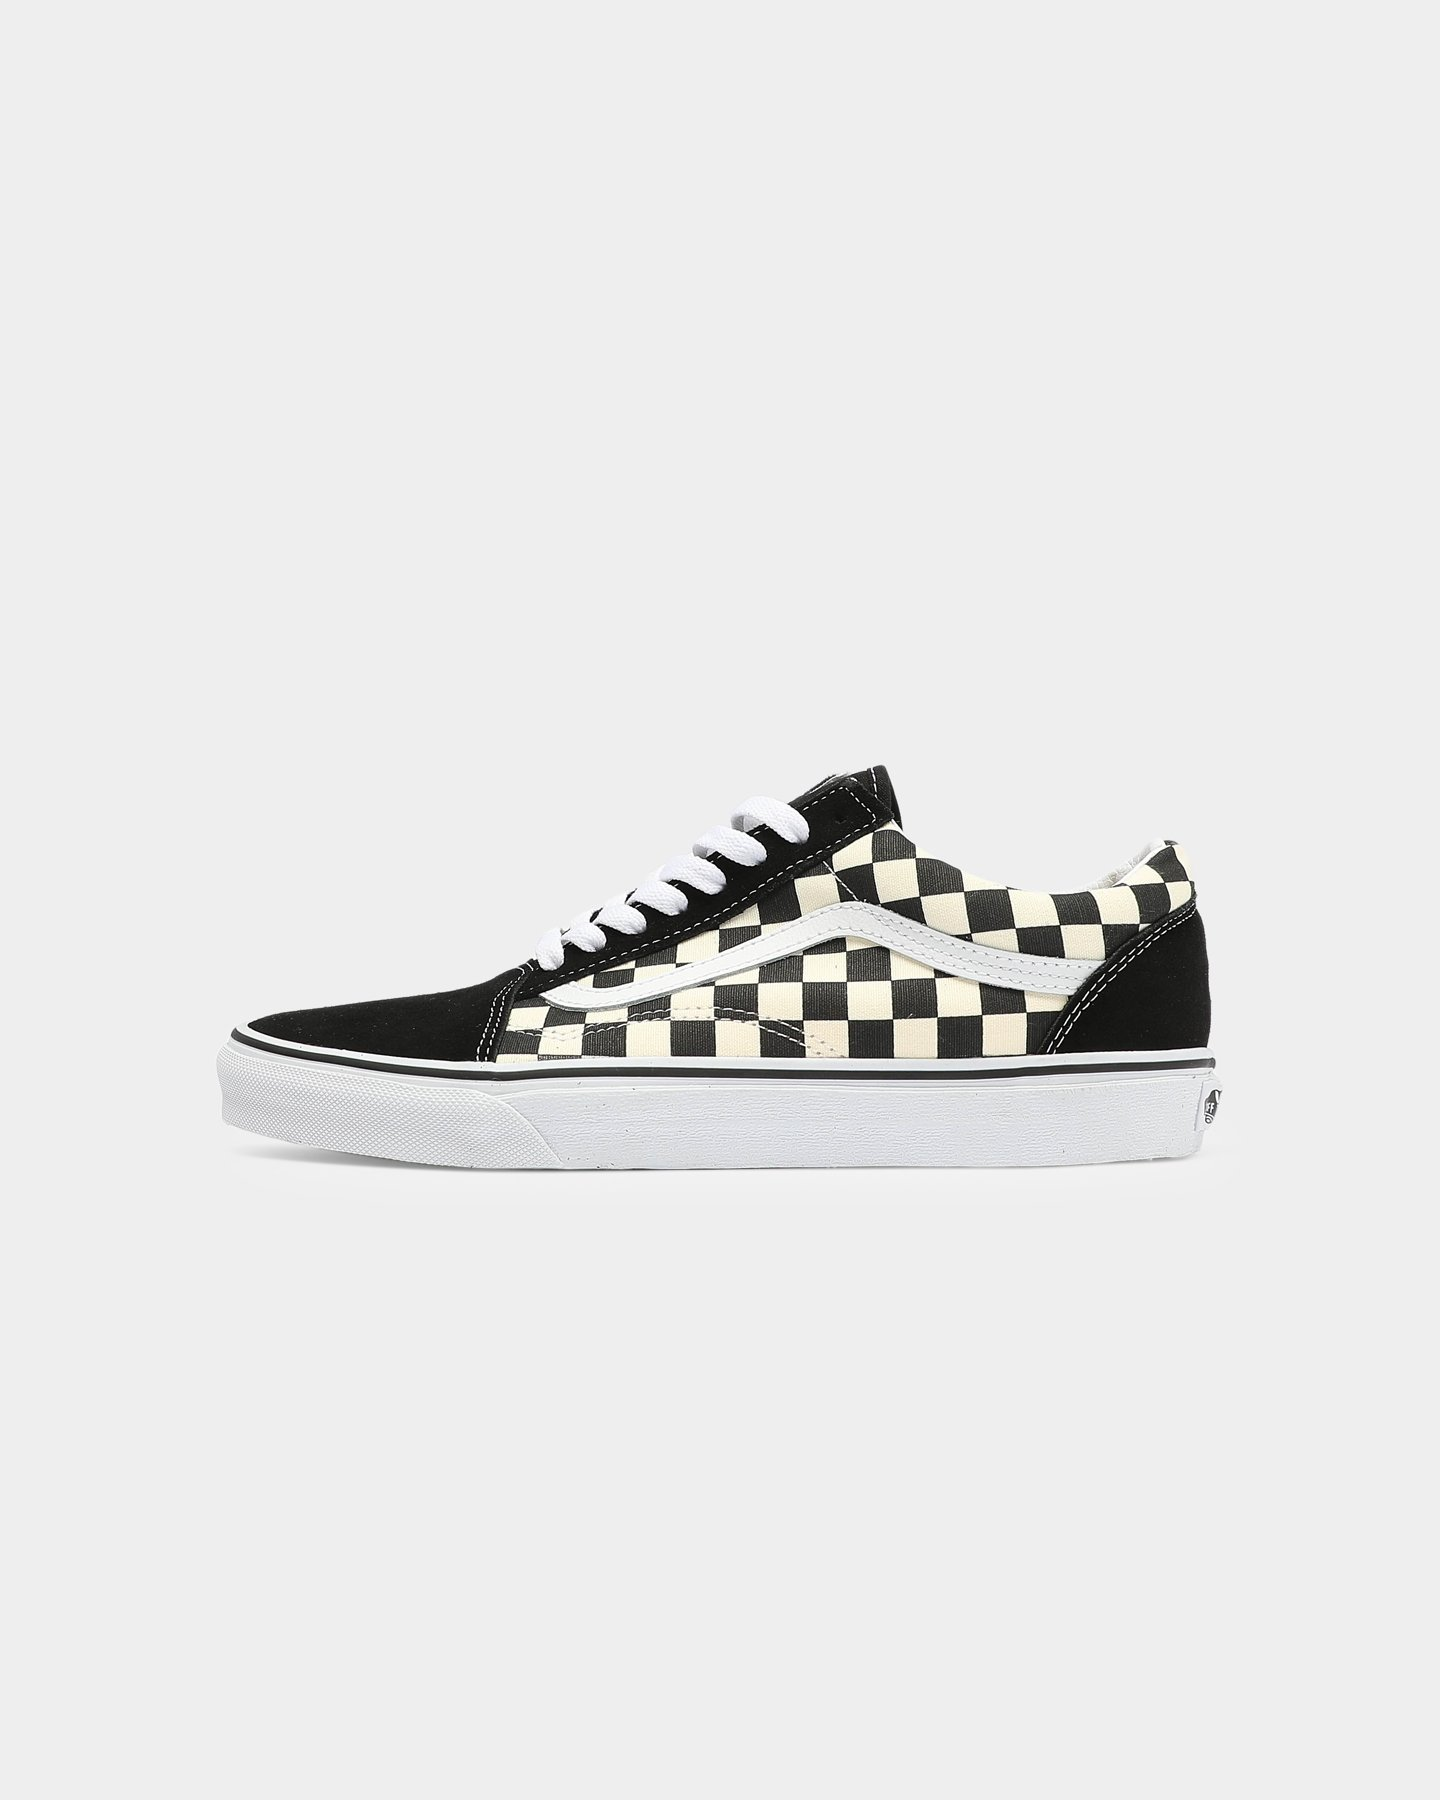 Vans Old Skool (Primary Check) BlackWhite